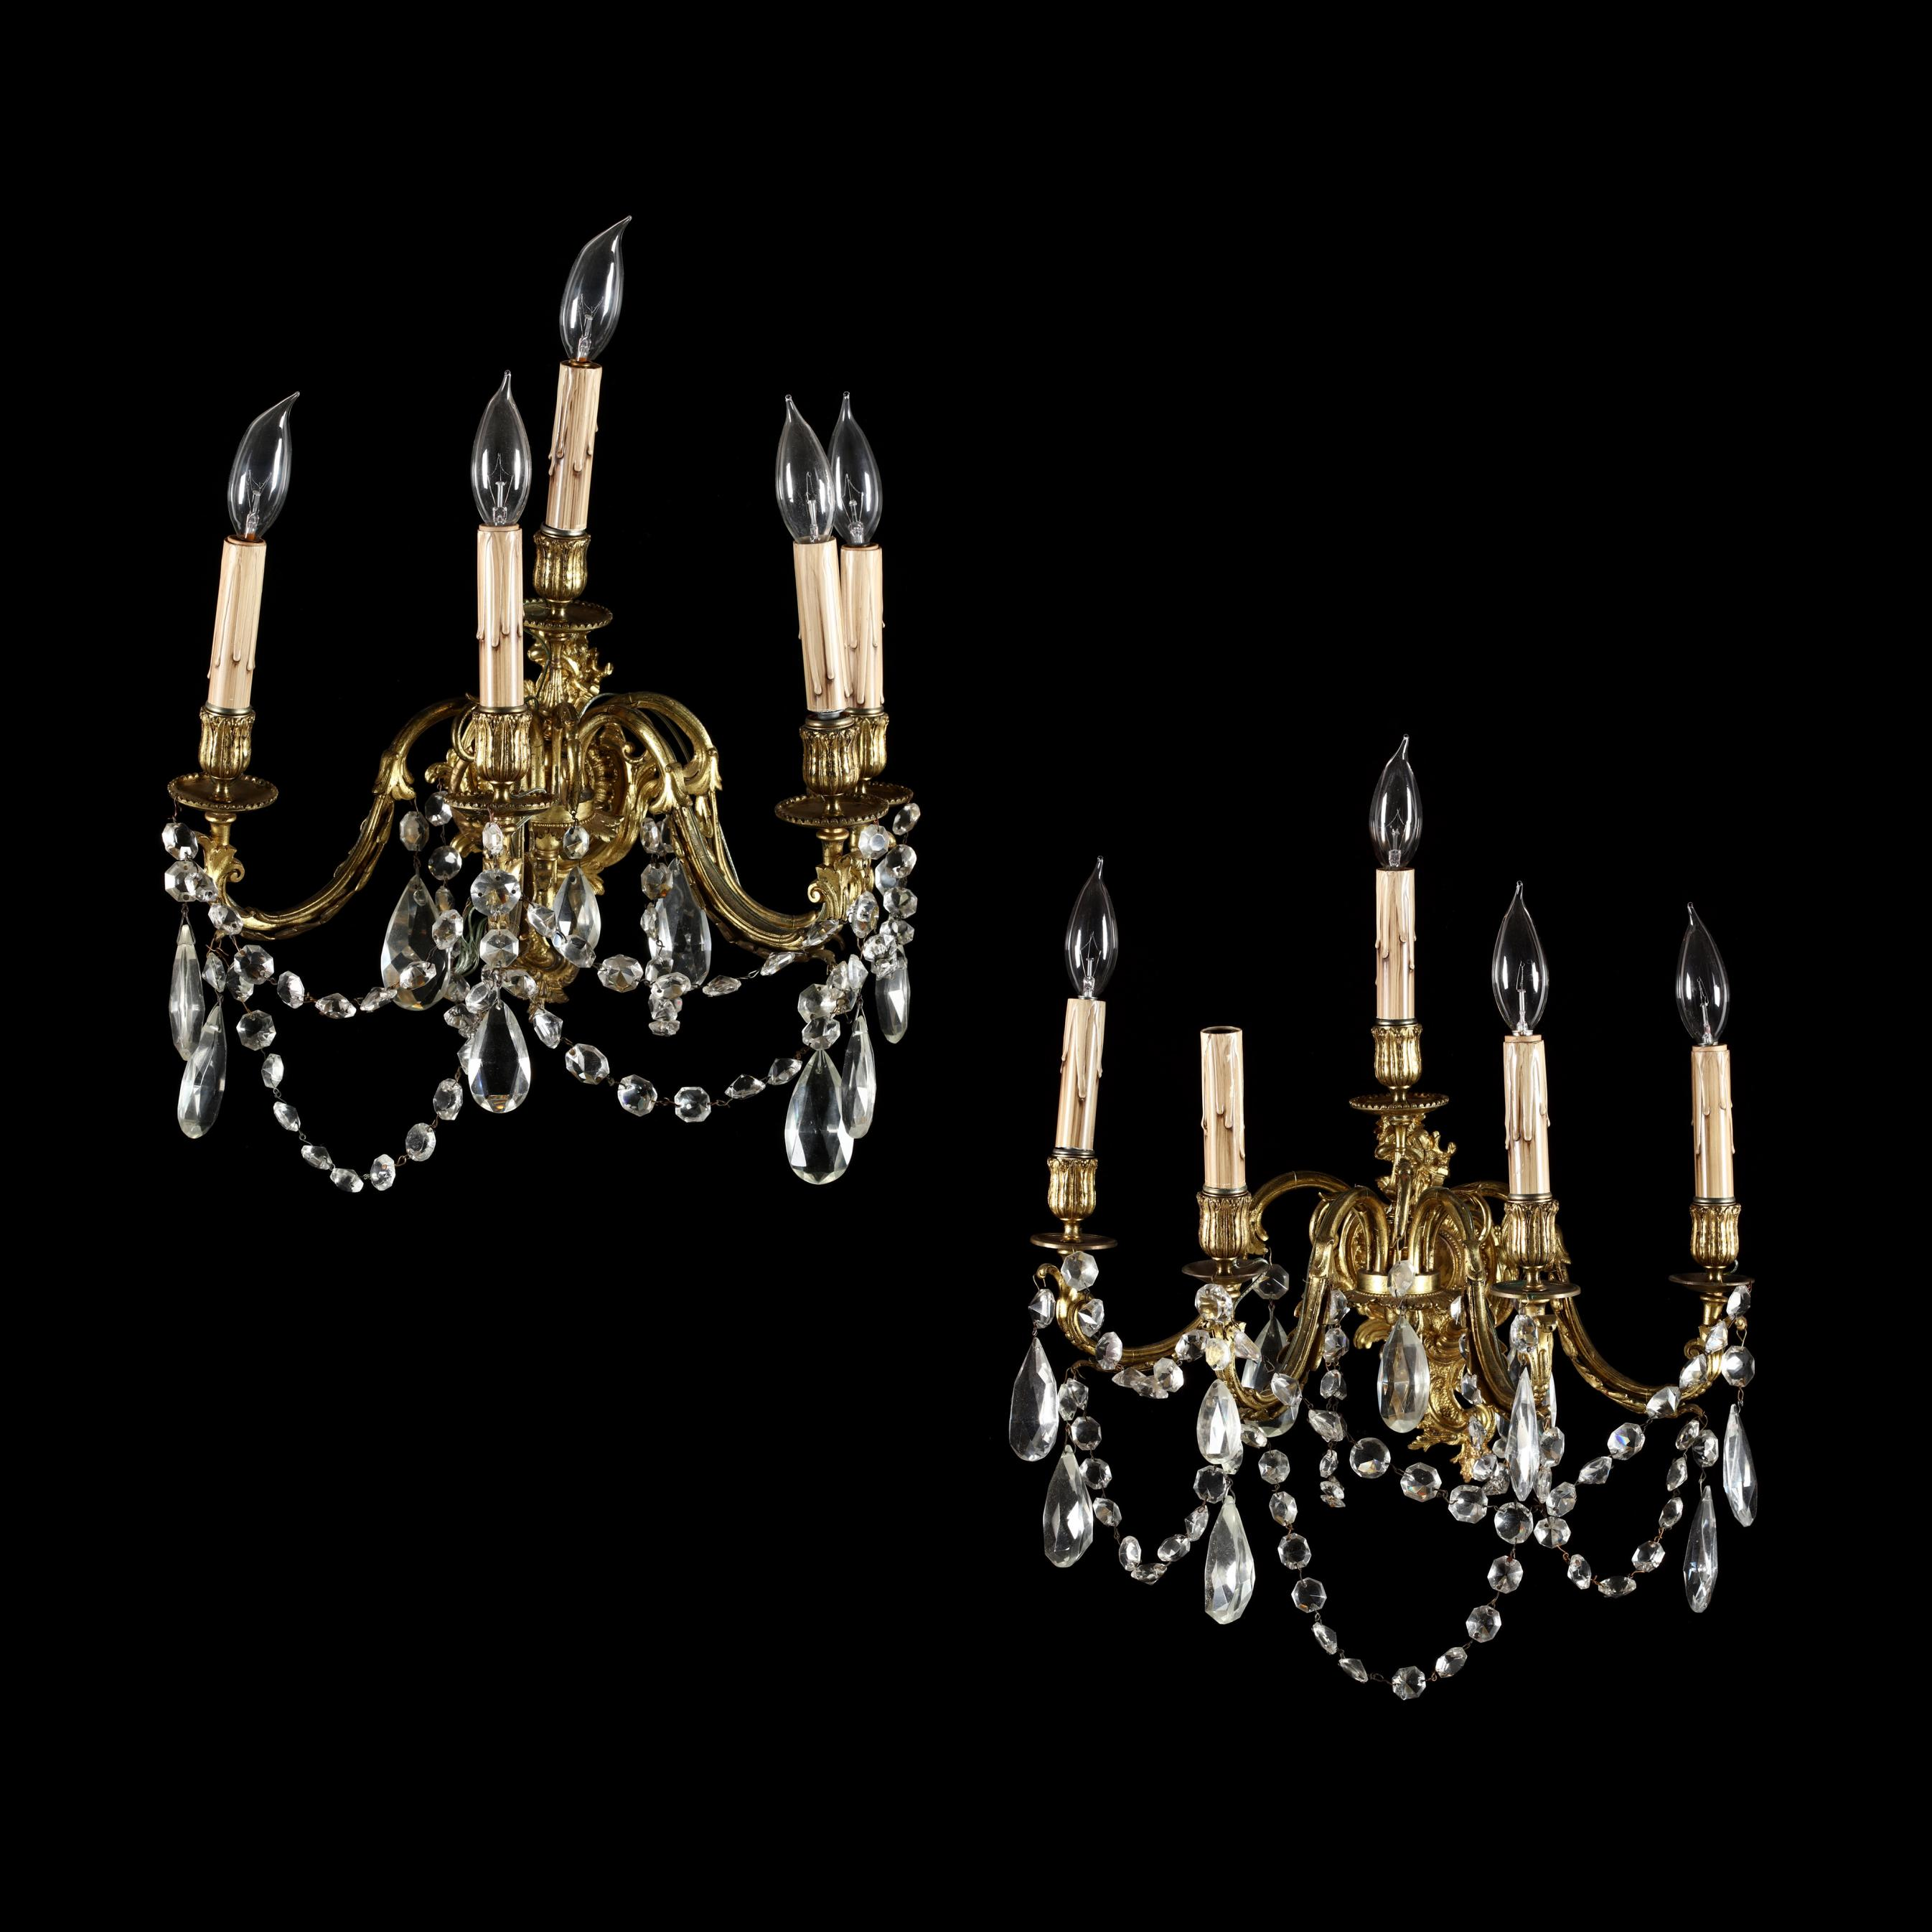 pair-of-louis-xv-style-gilt-metal-and-drop-prism-sconces